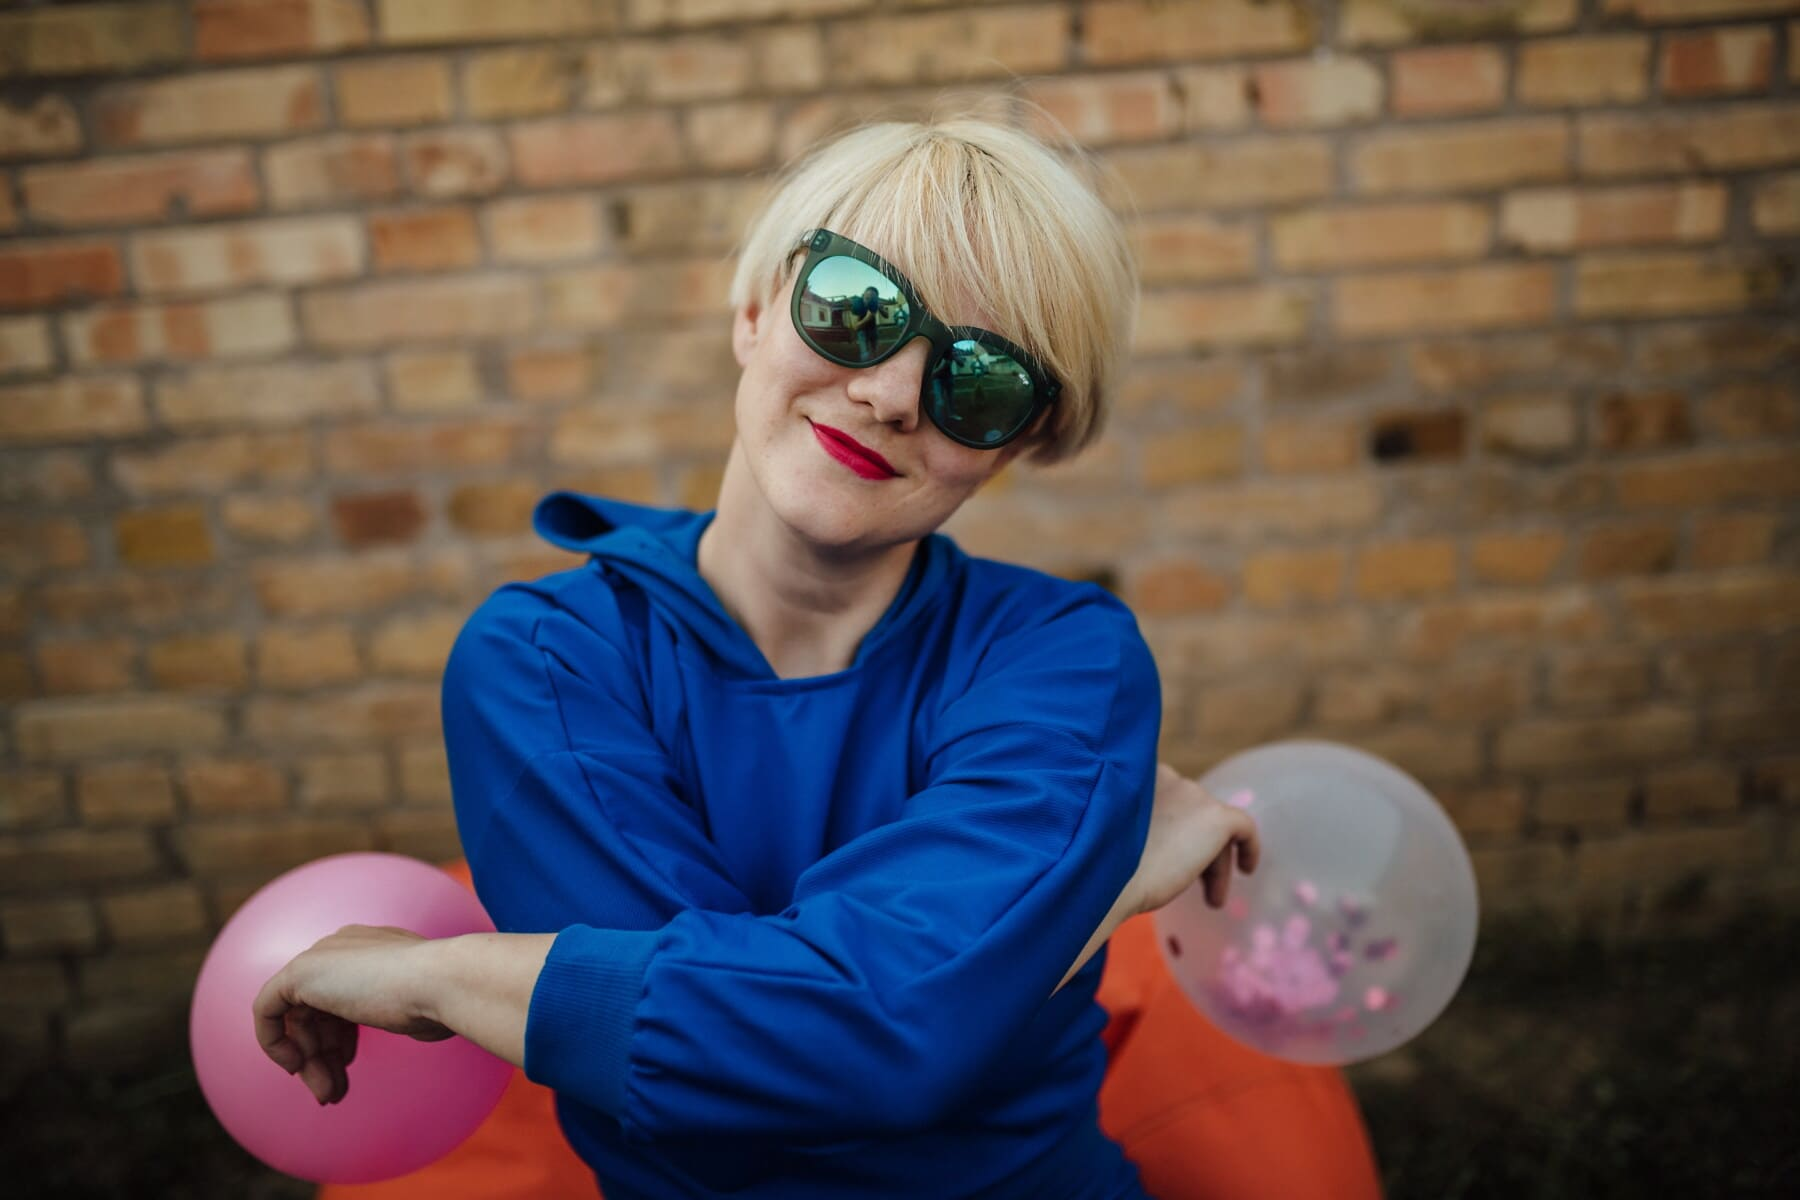 gorgeous, blonde, outfit, fashion, free style, casual, portrait, sunglasses, balloon, face